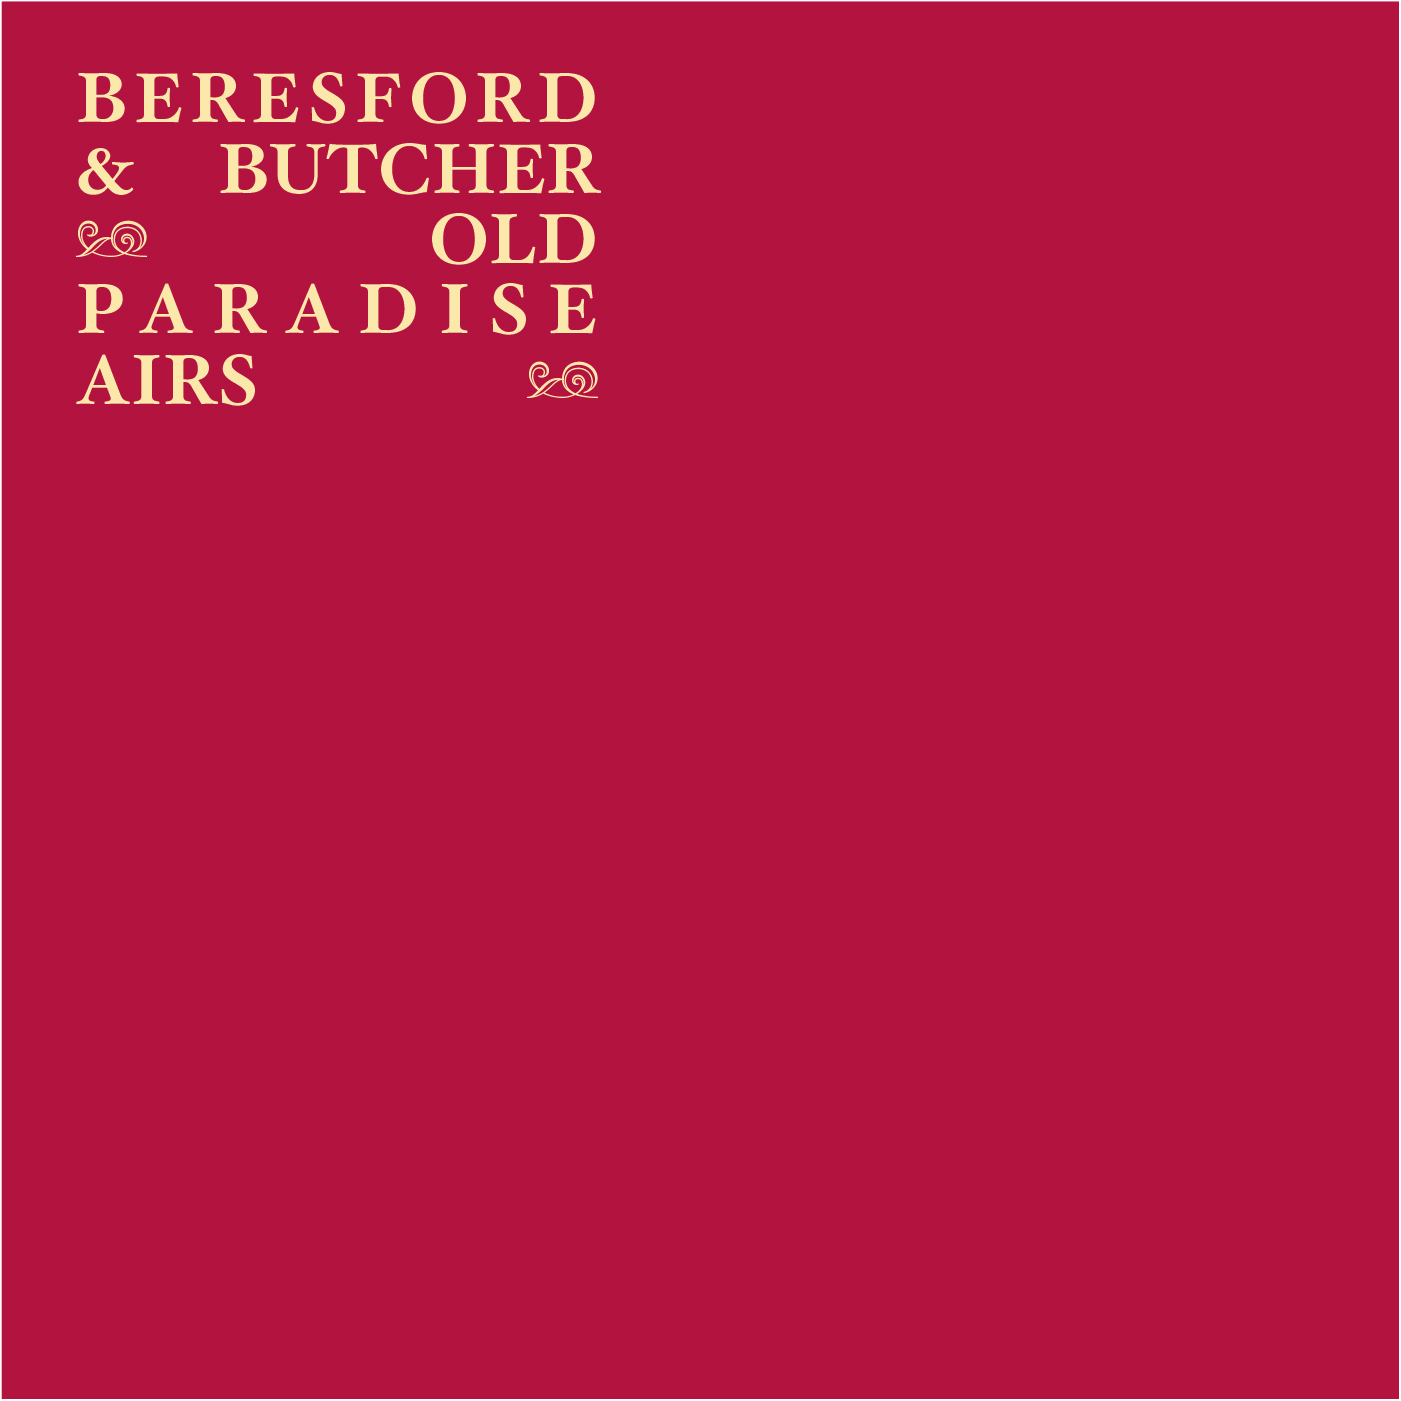 Old Paradise Airs by Steve Beresford & John Butcher